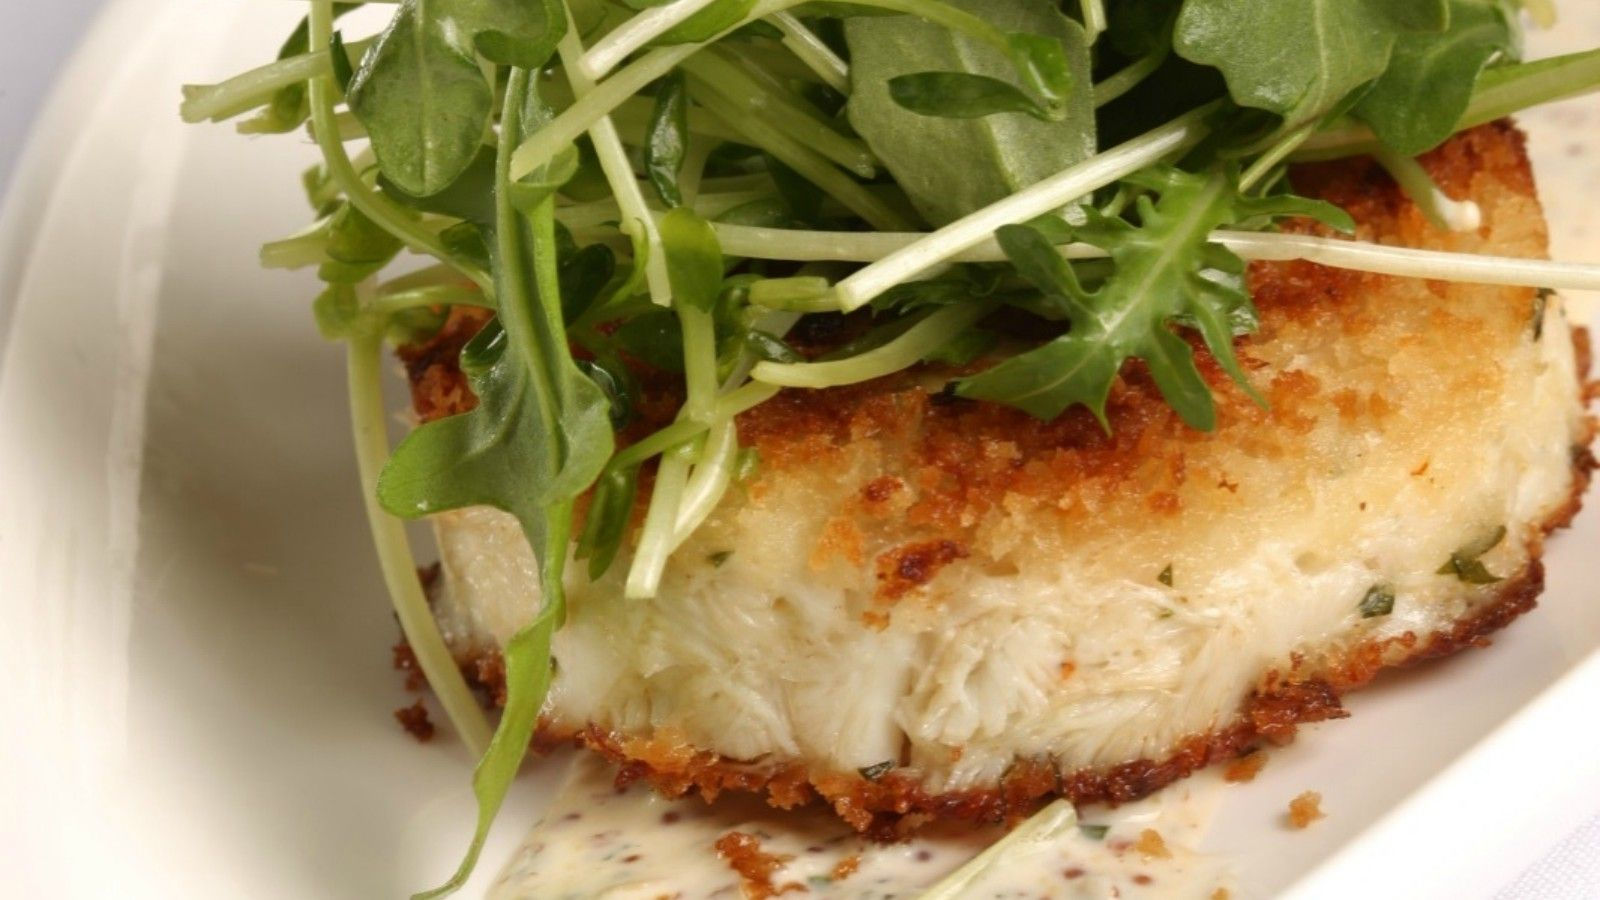 Morristown Restaurants - Crab Cake